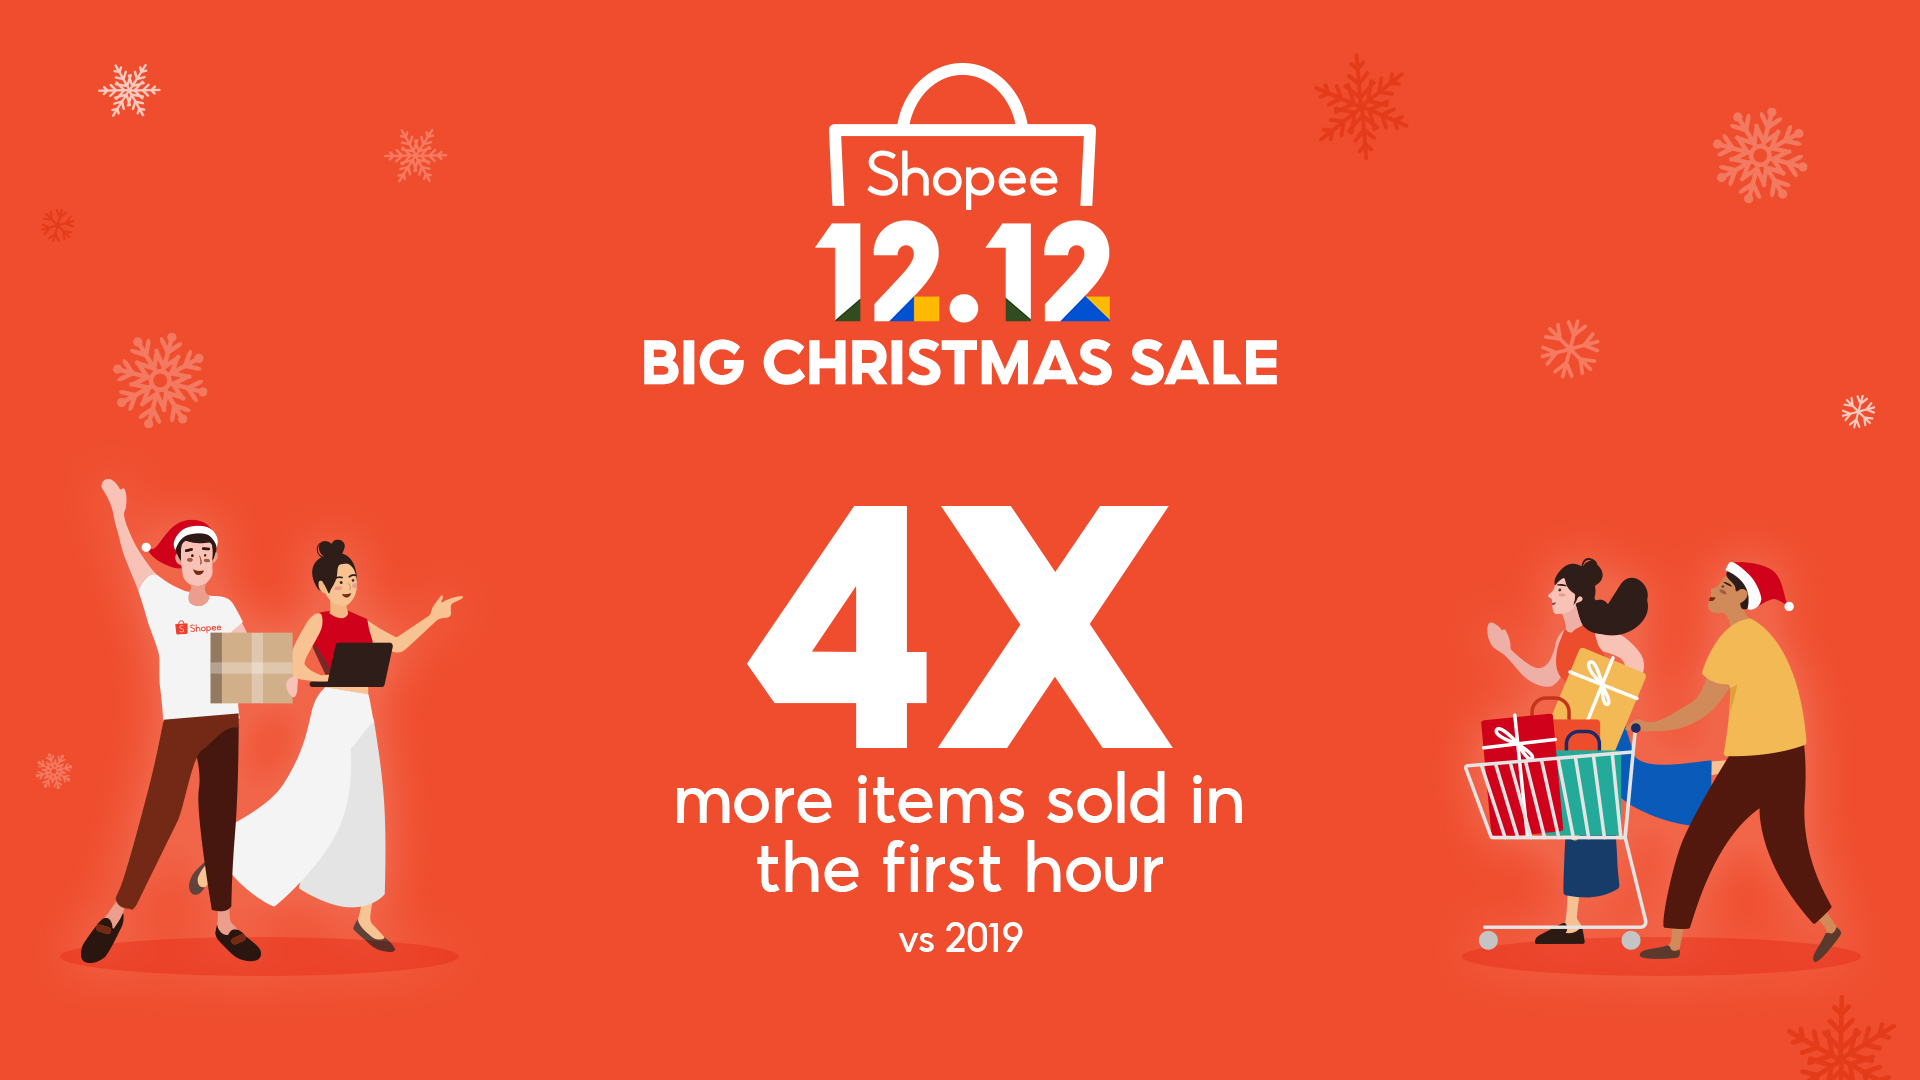 Shopee 12.12 Birthday Sale kicks off on a high note, with four times more items sold in the first hour compared to last year